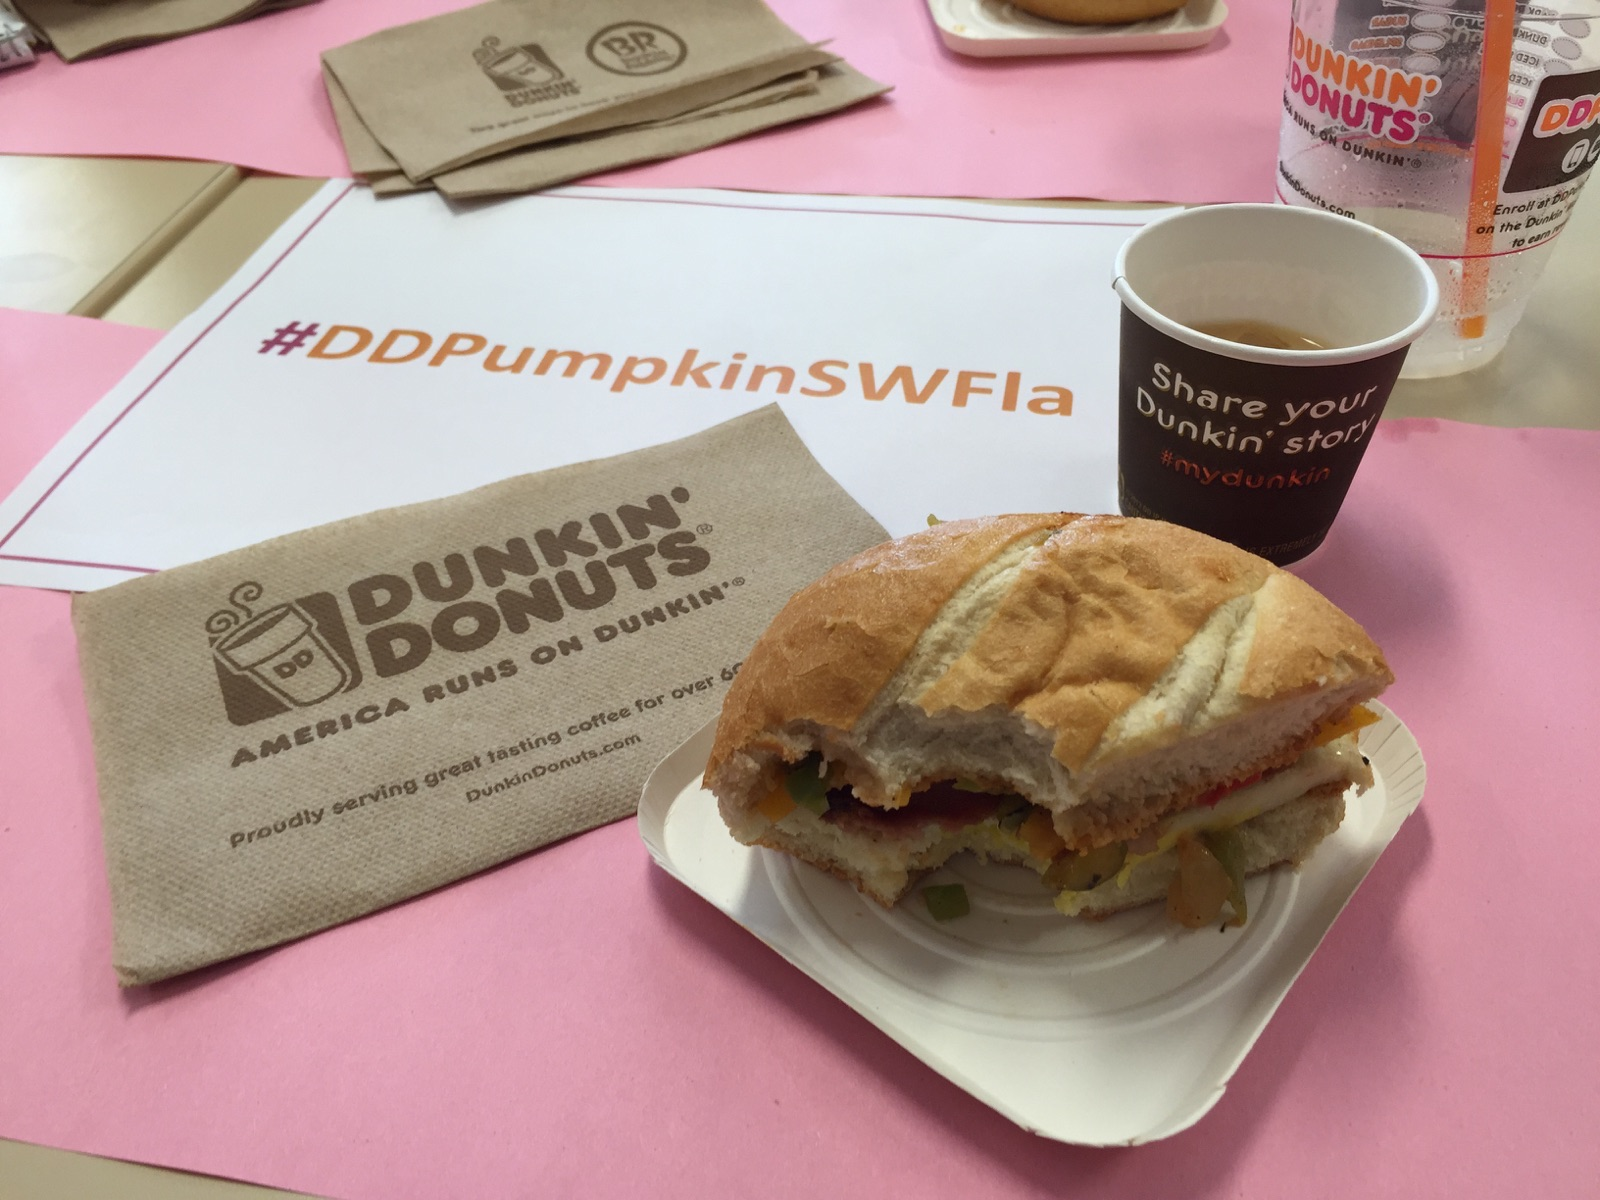 National Coffee Day at Dunkin Donuts September 29th